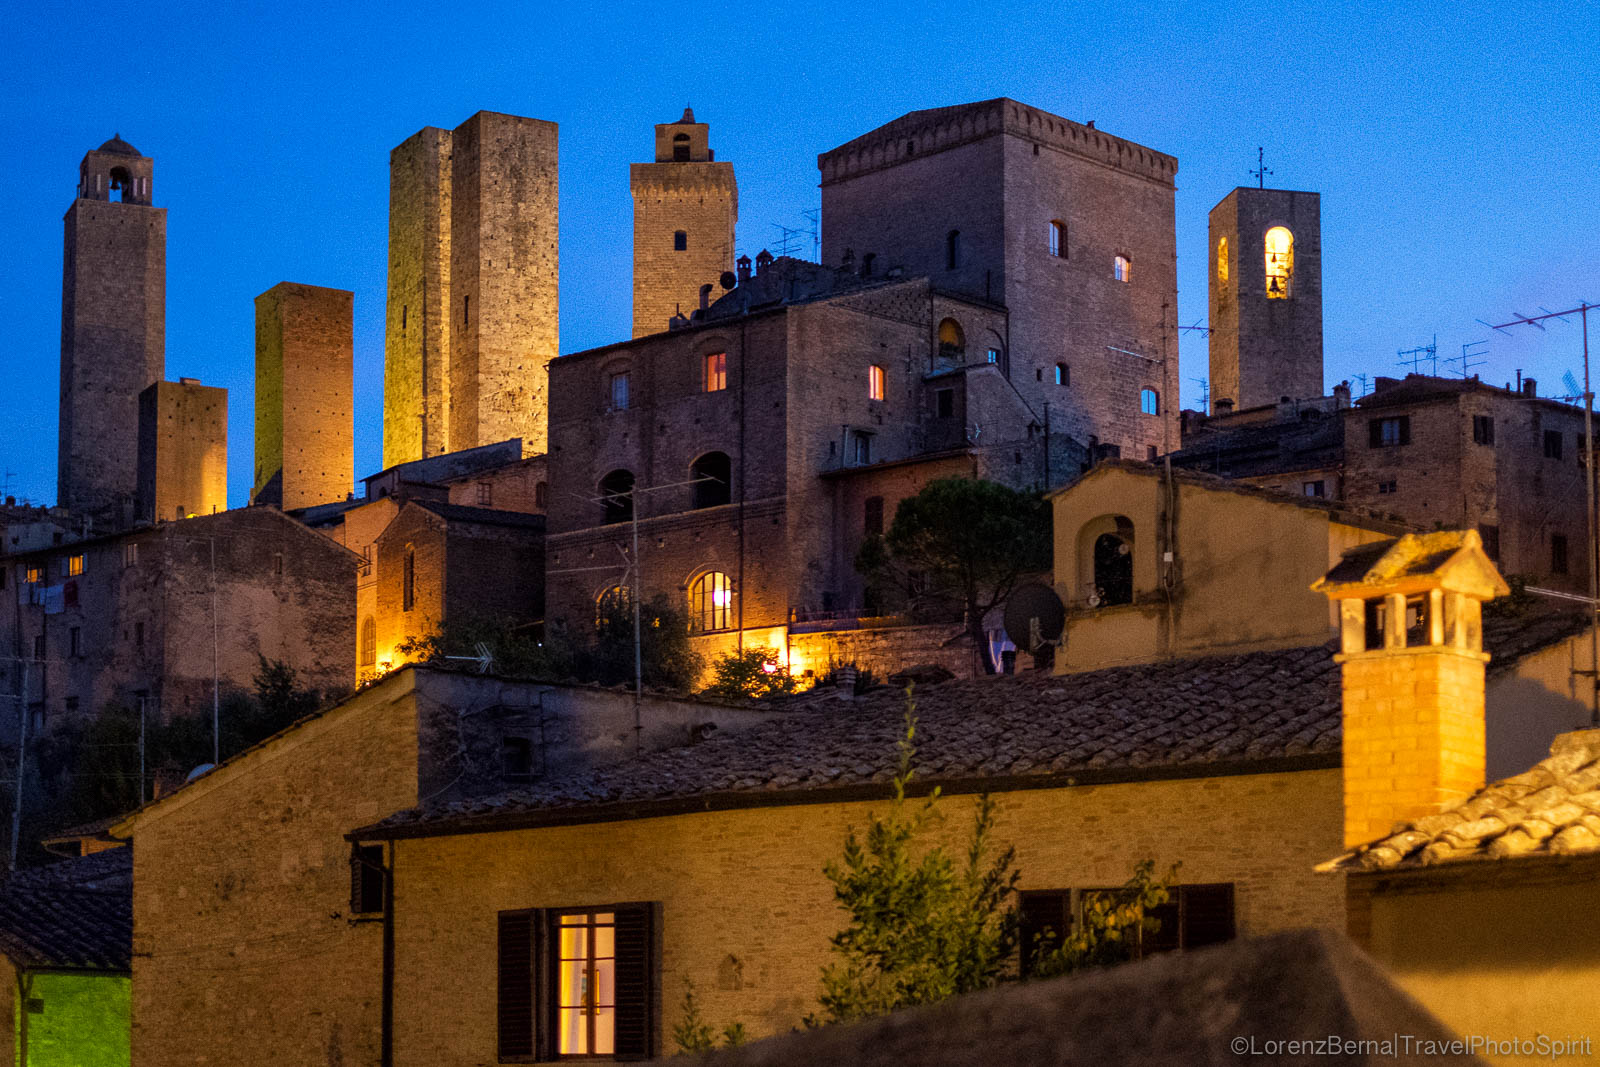 San Gimignano in the evening lights, Tuscany, Italy.